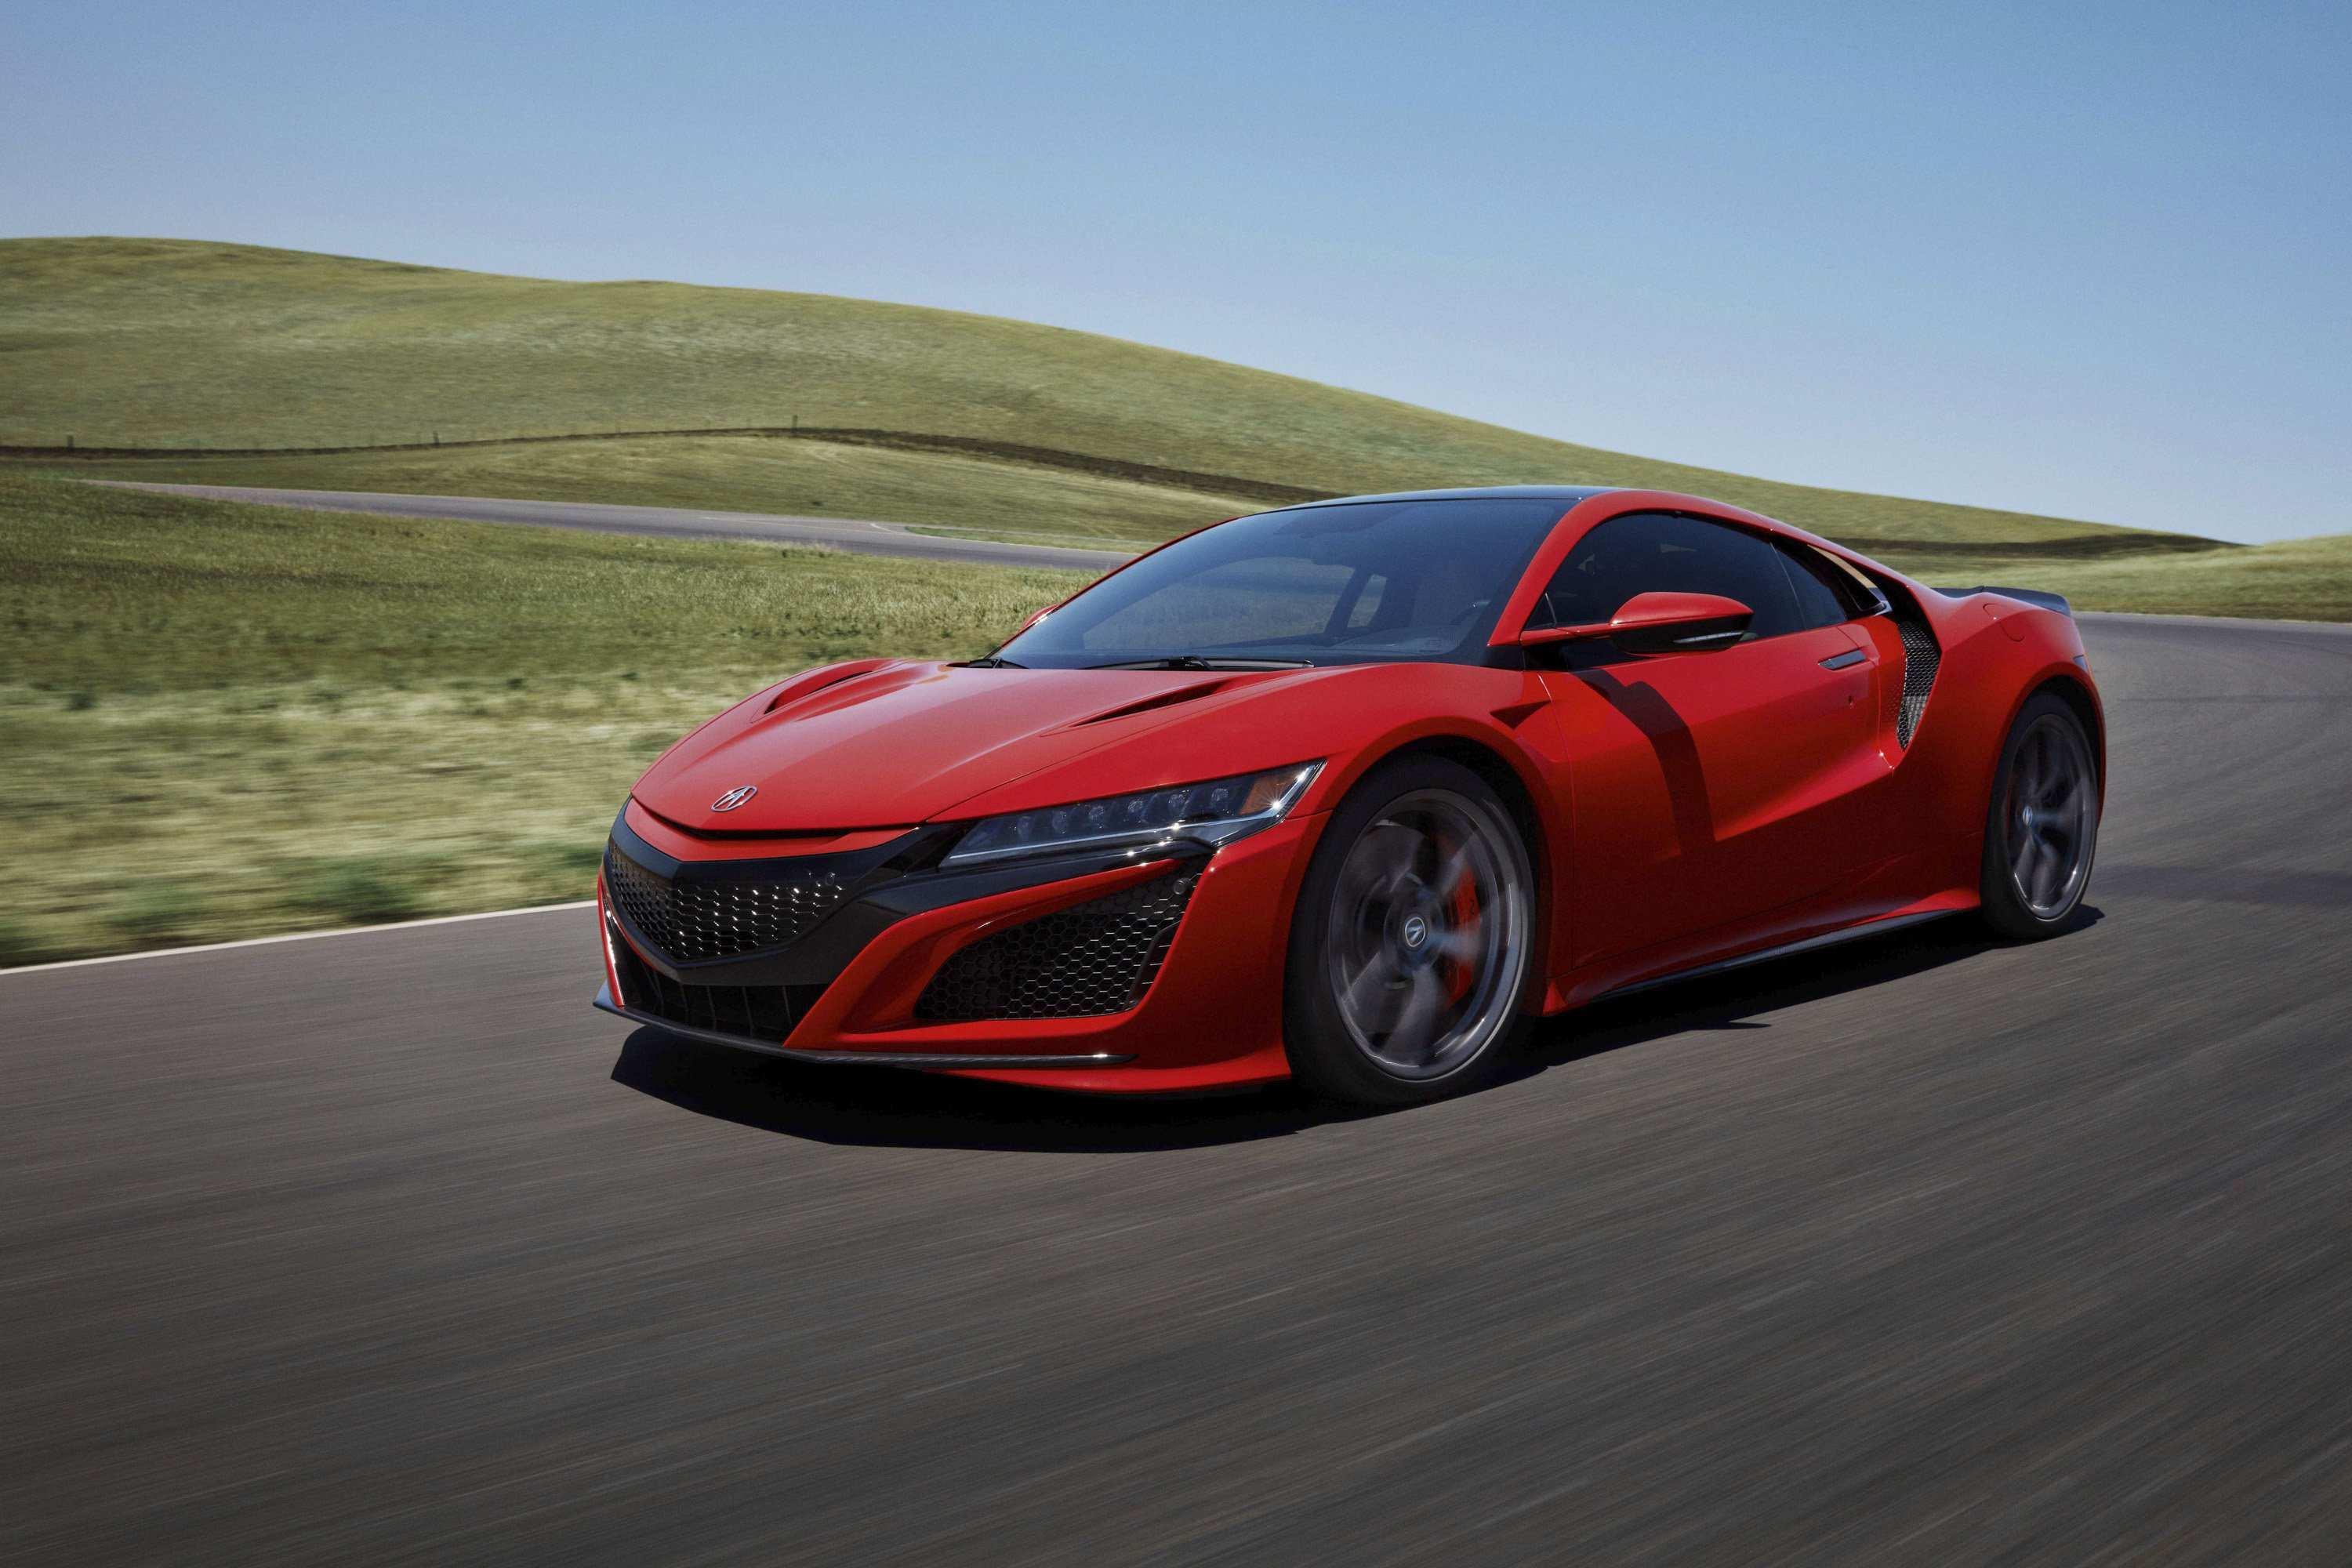 83 Concept of Acura Nsx 2020 Price Style by Acura Nsx 2020 Price